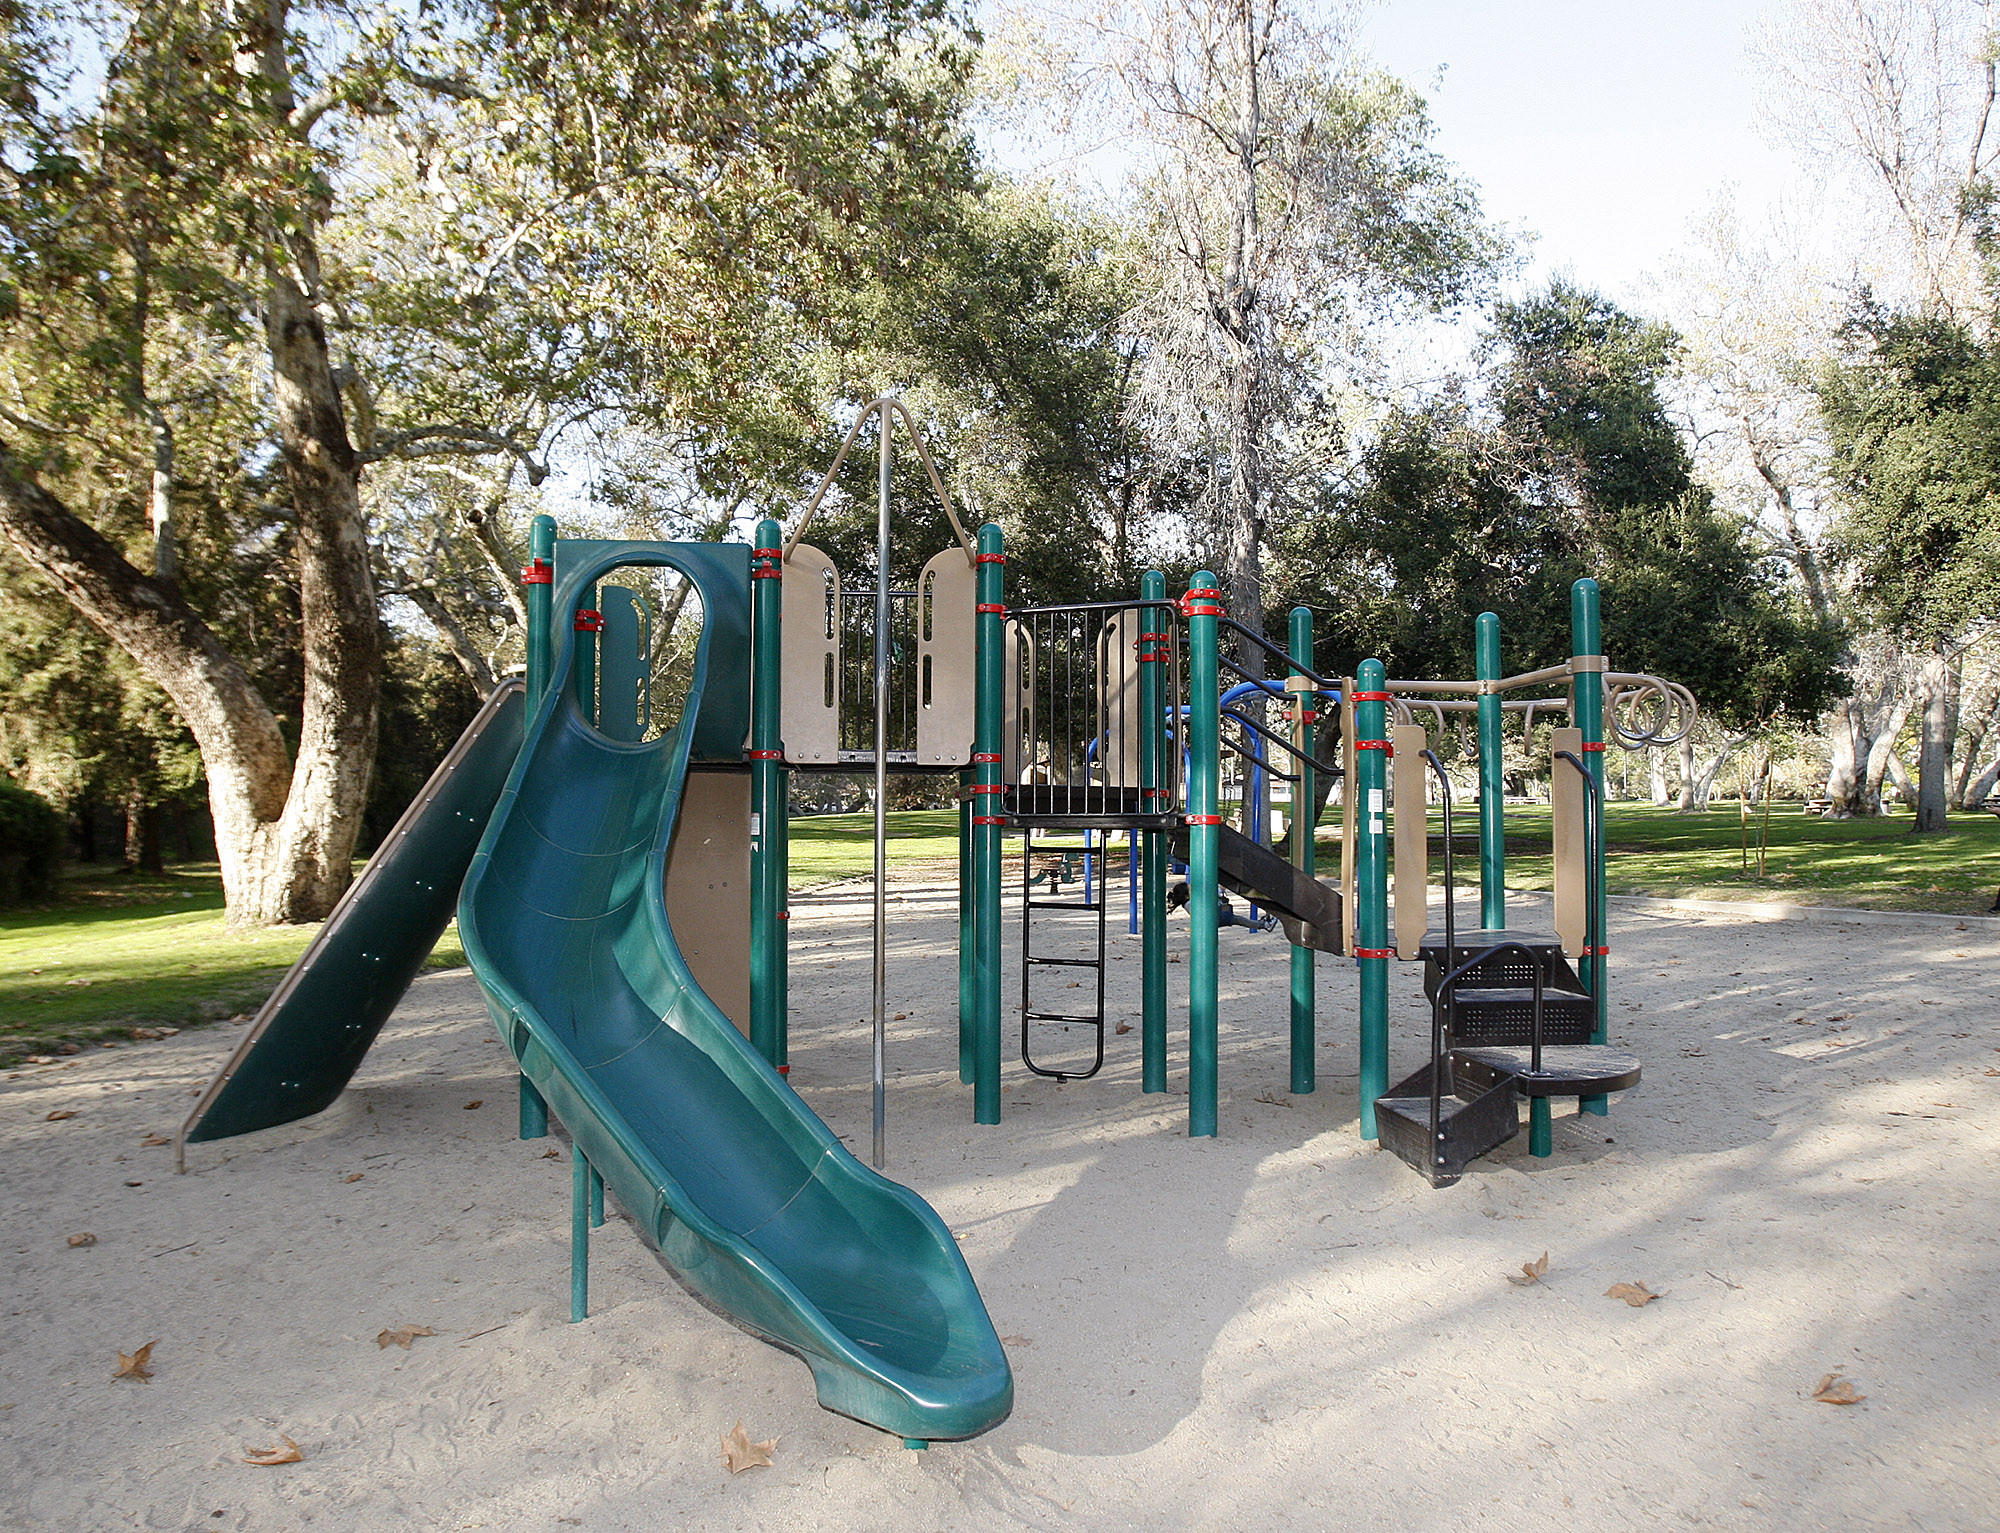 Playground equipment at Verdugo Park, donated by the Americana at Brand to Glendale as part of citywide upgrades to parks, pictured on Friday, Feb, 14, 2014.